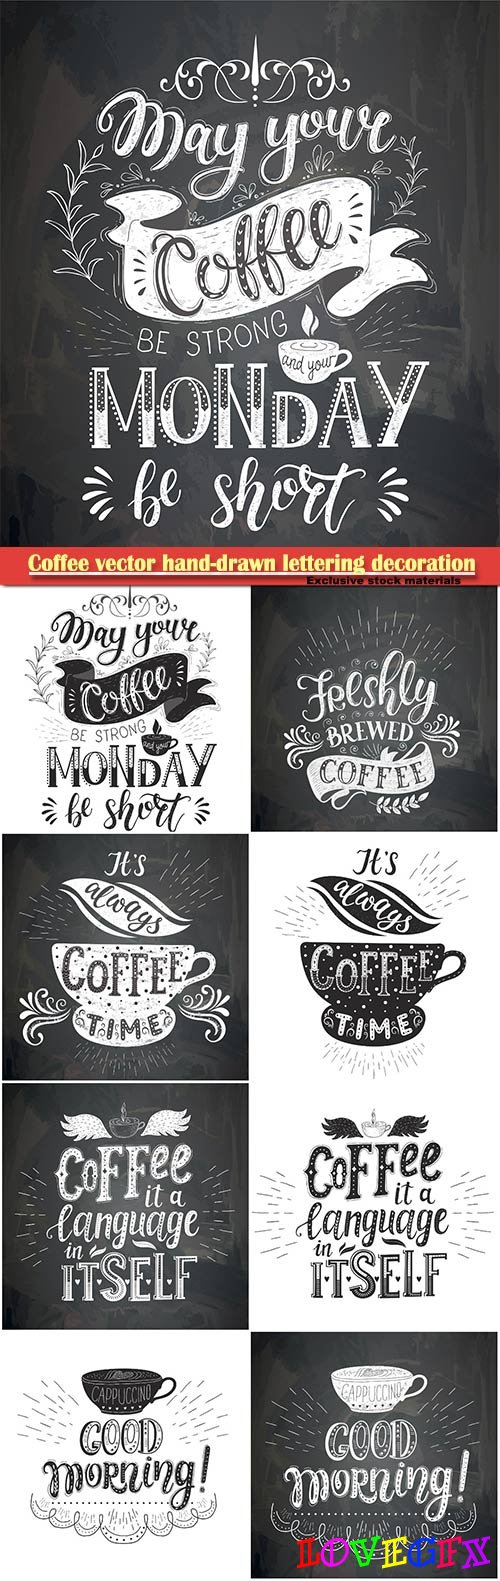 Coffee vector hand-drawn lettering decoration for restaurant and bar